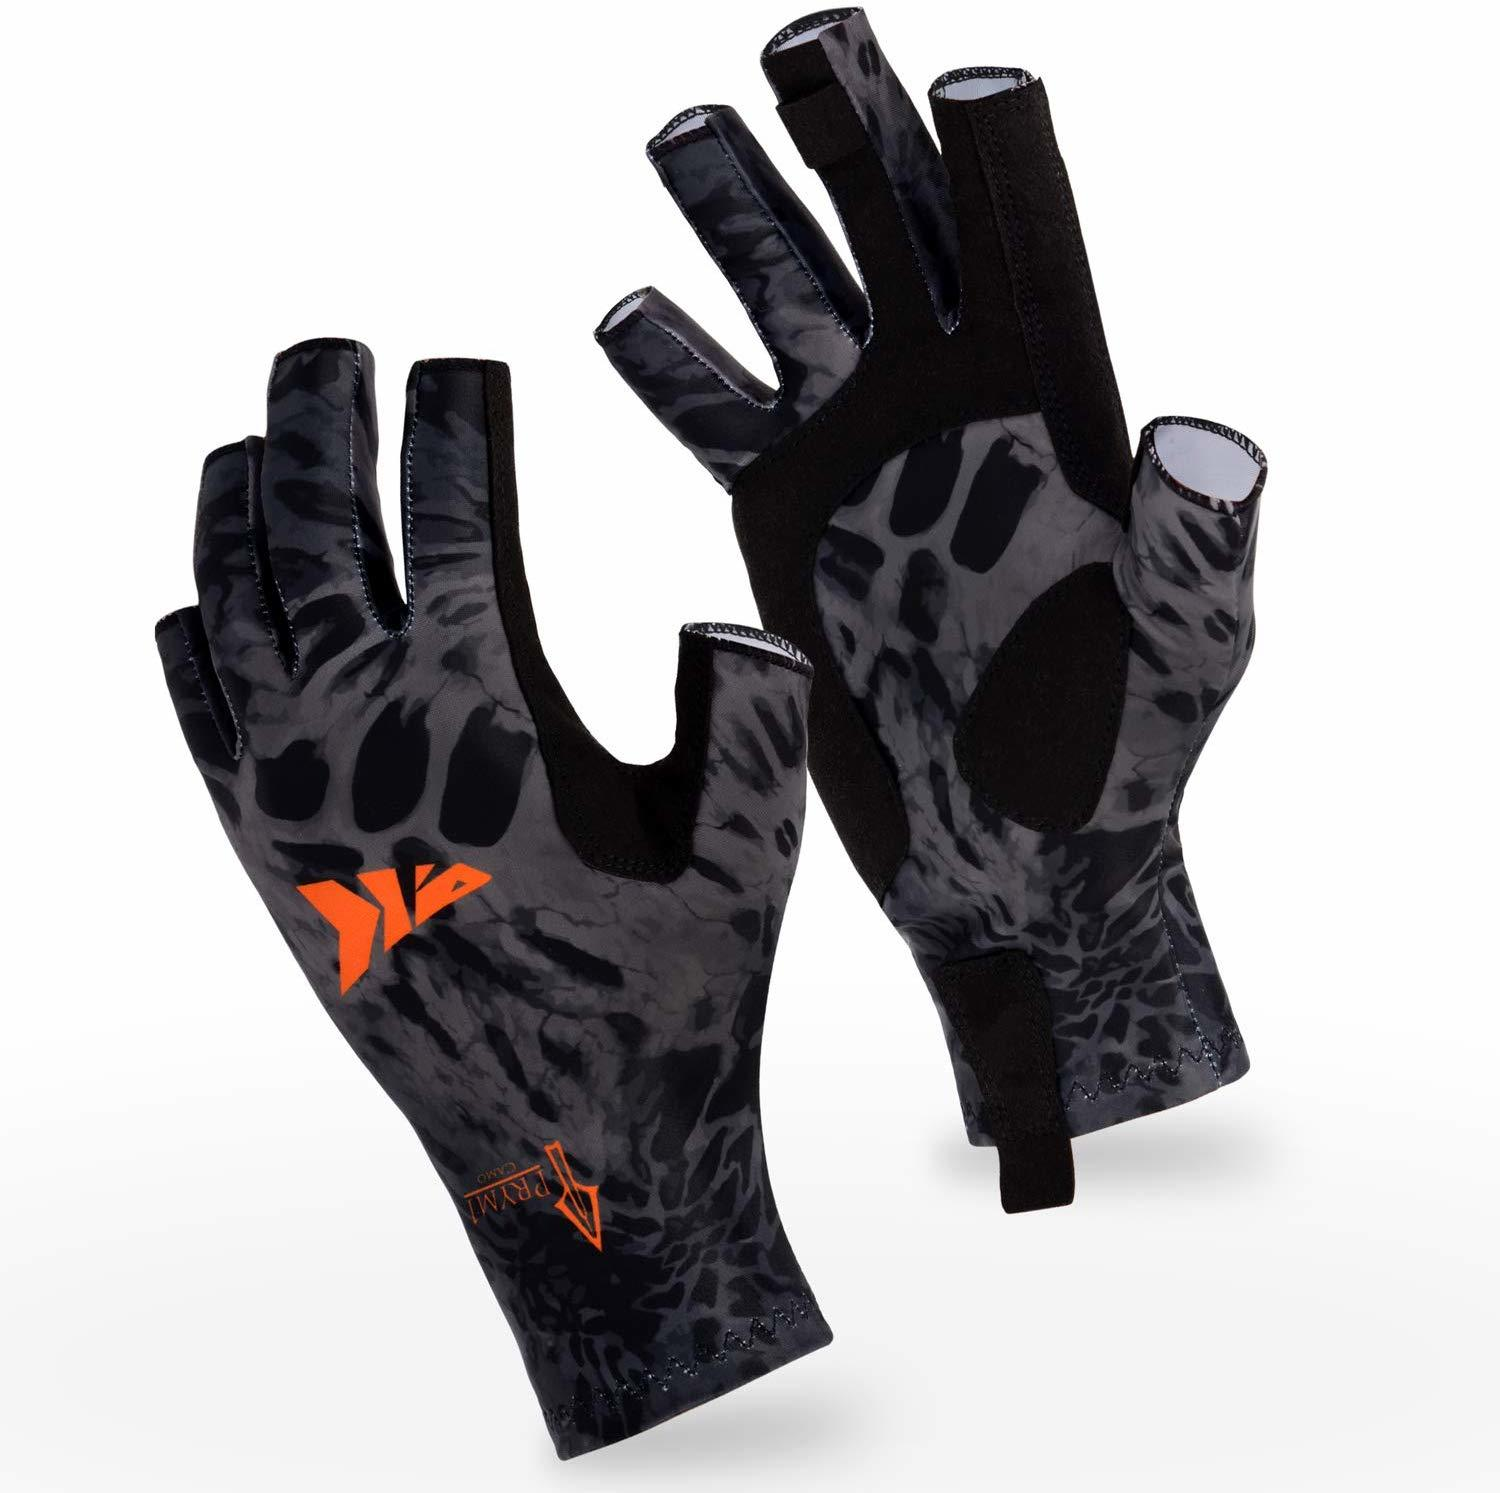 10 Sailing Gloves that will Protect Your Hands While Doing Water Sports 1